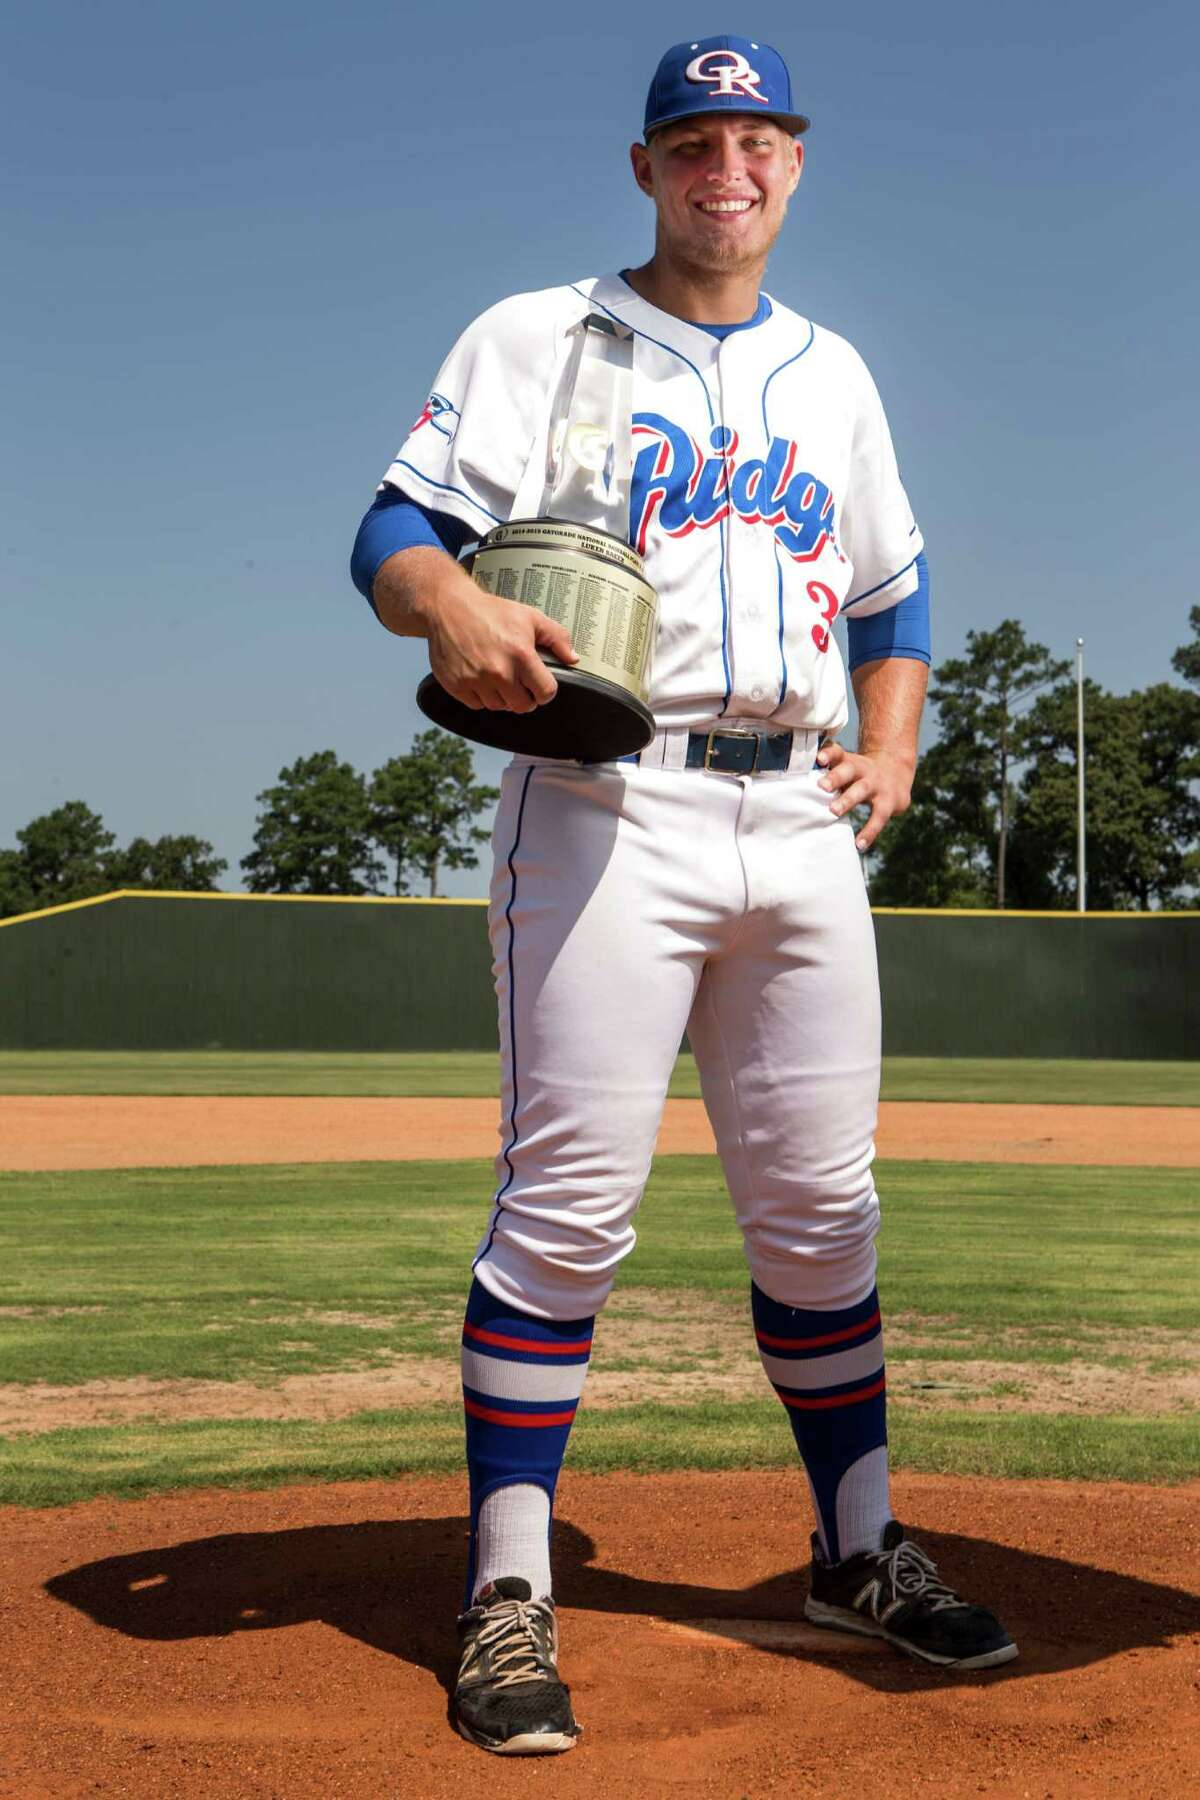 Oak Ridge High School senior baseball player Luken Baker poses for a portrait after being named the Gatorade National Baseball Player of the Year during a ceremony on Tuesday, June 2, 2015, in Conroe. The award recognizes outstanding athletic excellence as well as high standards of academic achievement and exemplary character demonstrated on and off the field. ( Brett Coomer / Houston Chronicle )